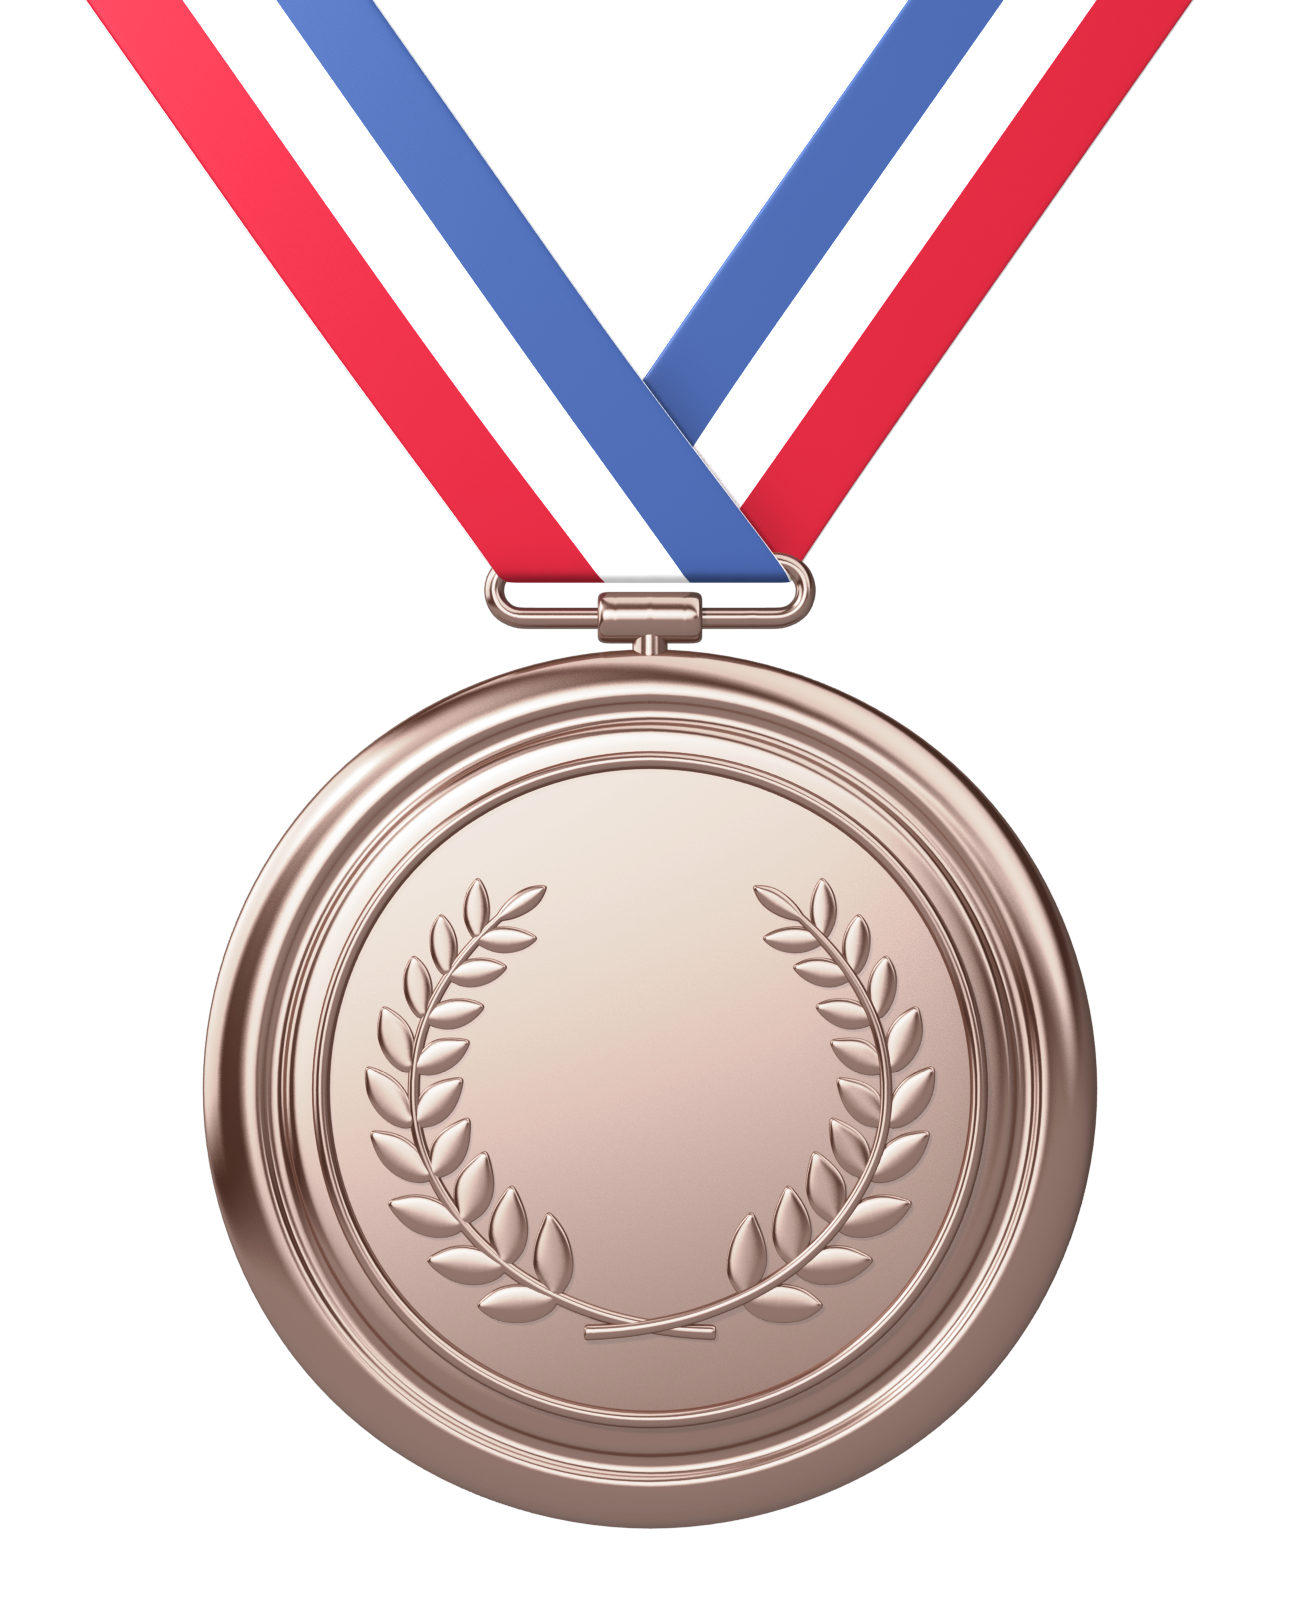 clip freeuse library Gold medal free PNG images clipart